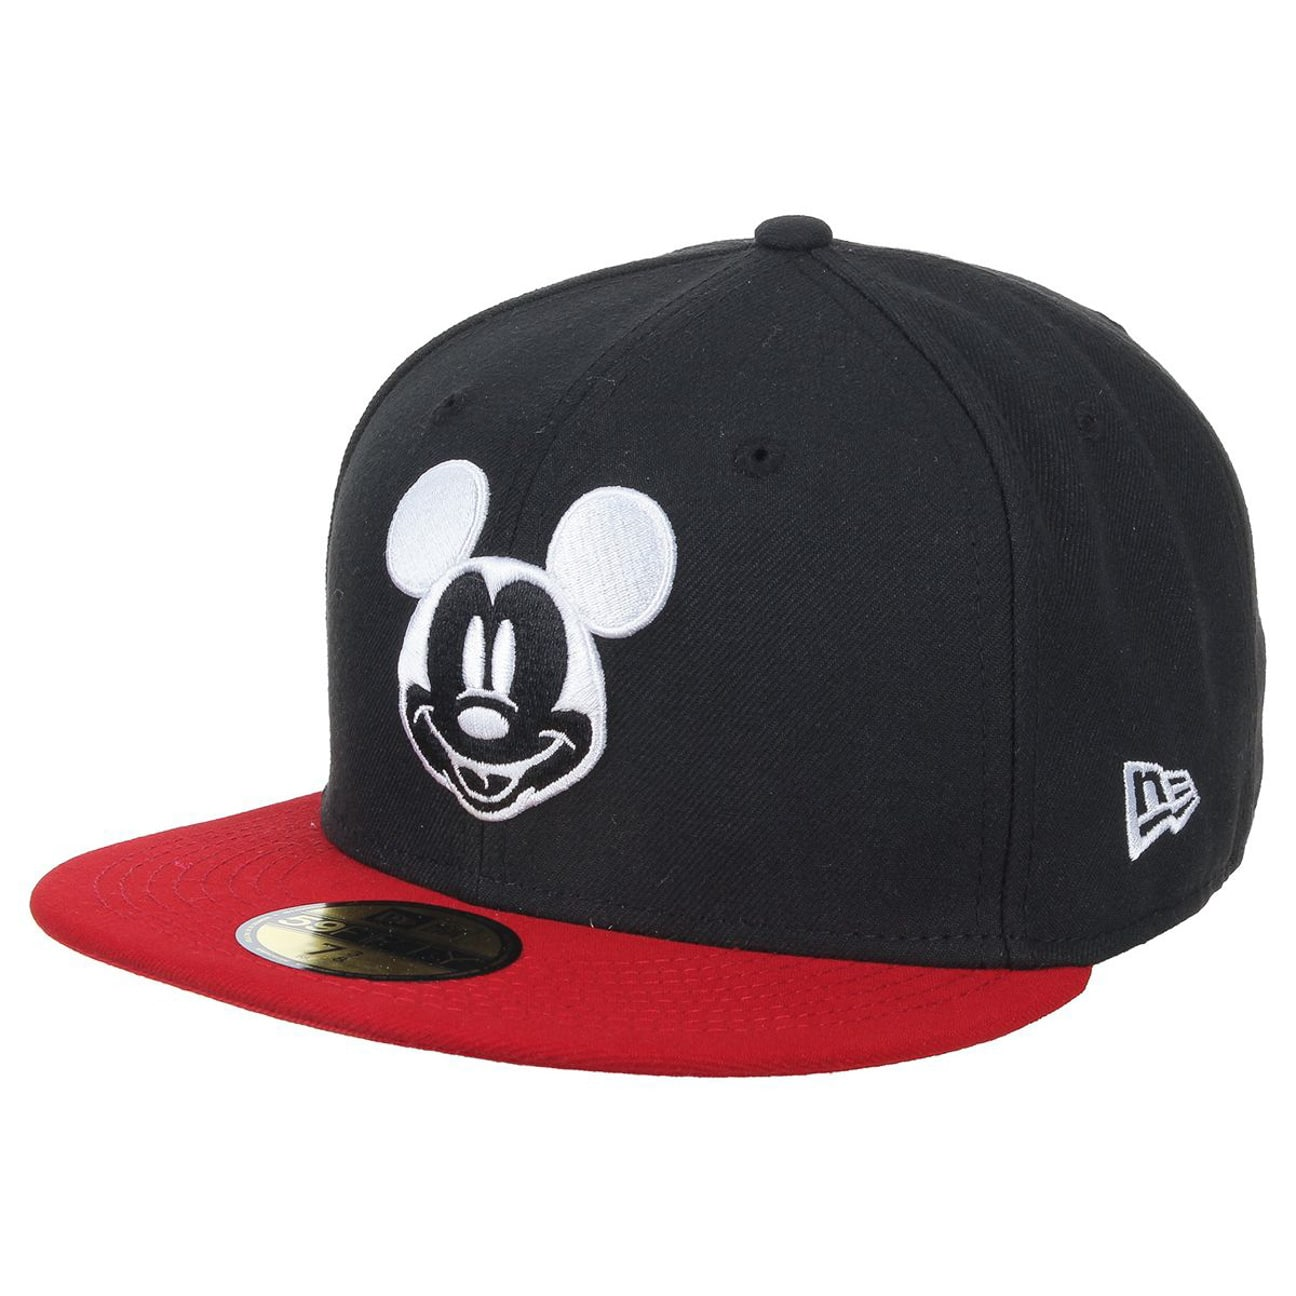 Find and save ideas about Mickey mouse ears hat on Pinterest. | See more ideas about Disney ears hat, Disney hat and Mickey ears diy.